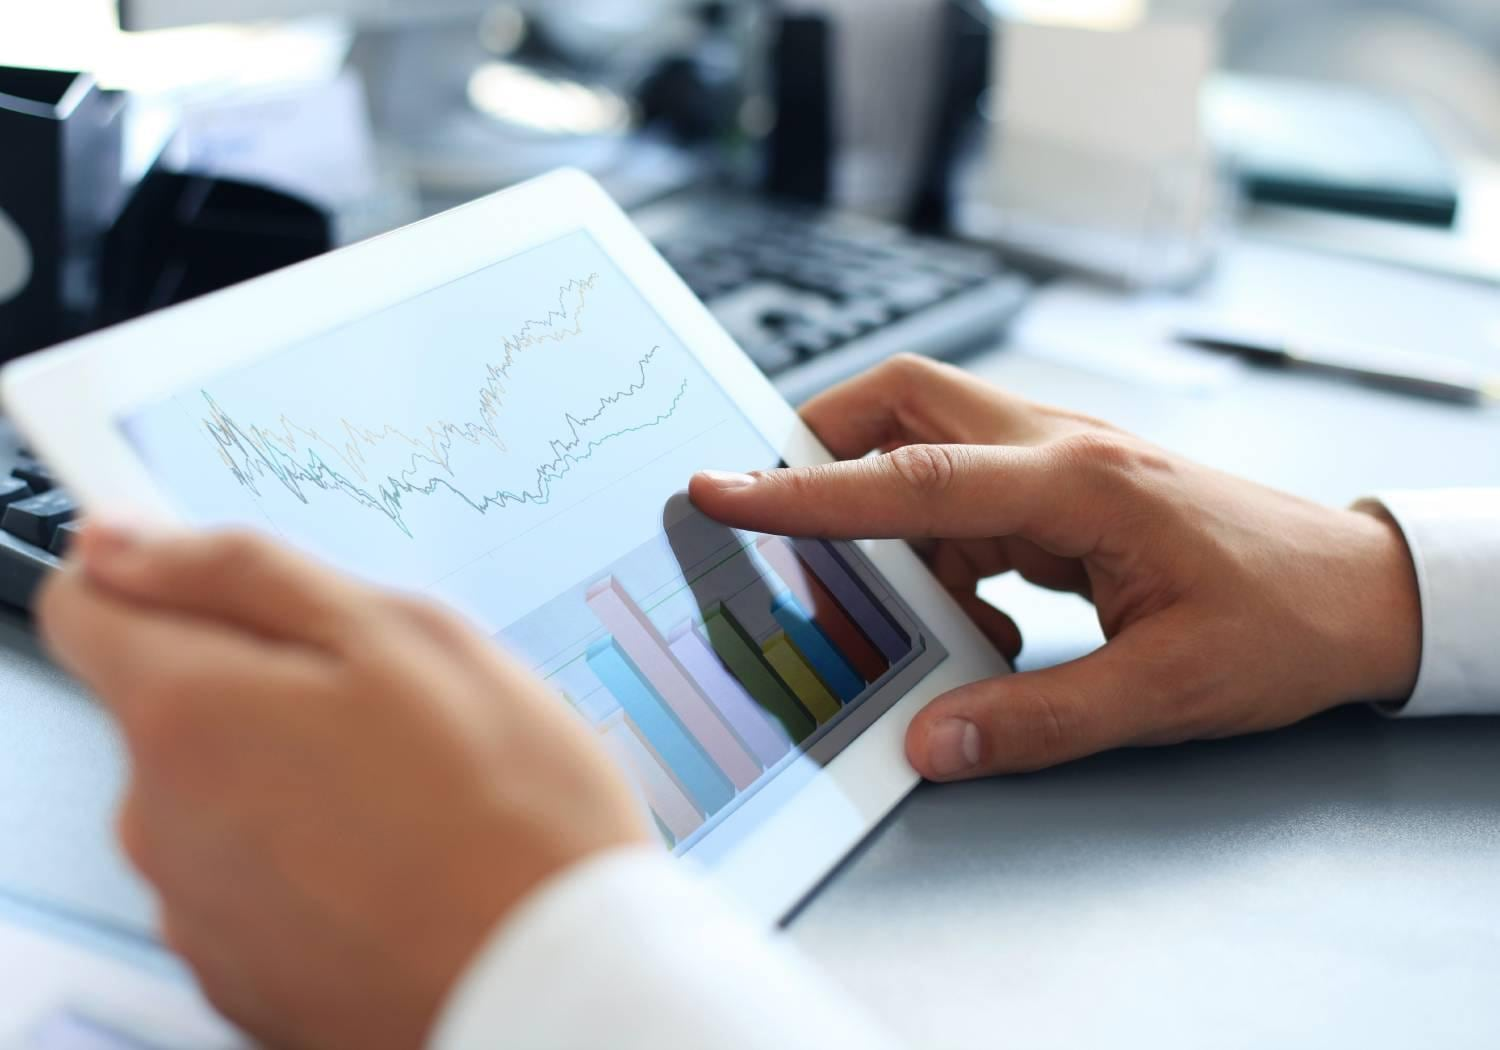 An office worker -- close-up image of an office worker using a touchpad to analyze statistical data